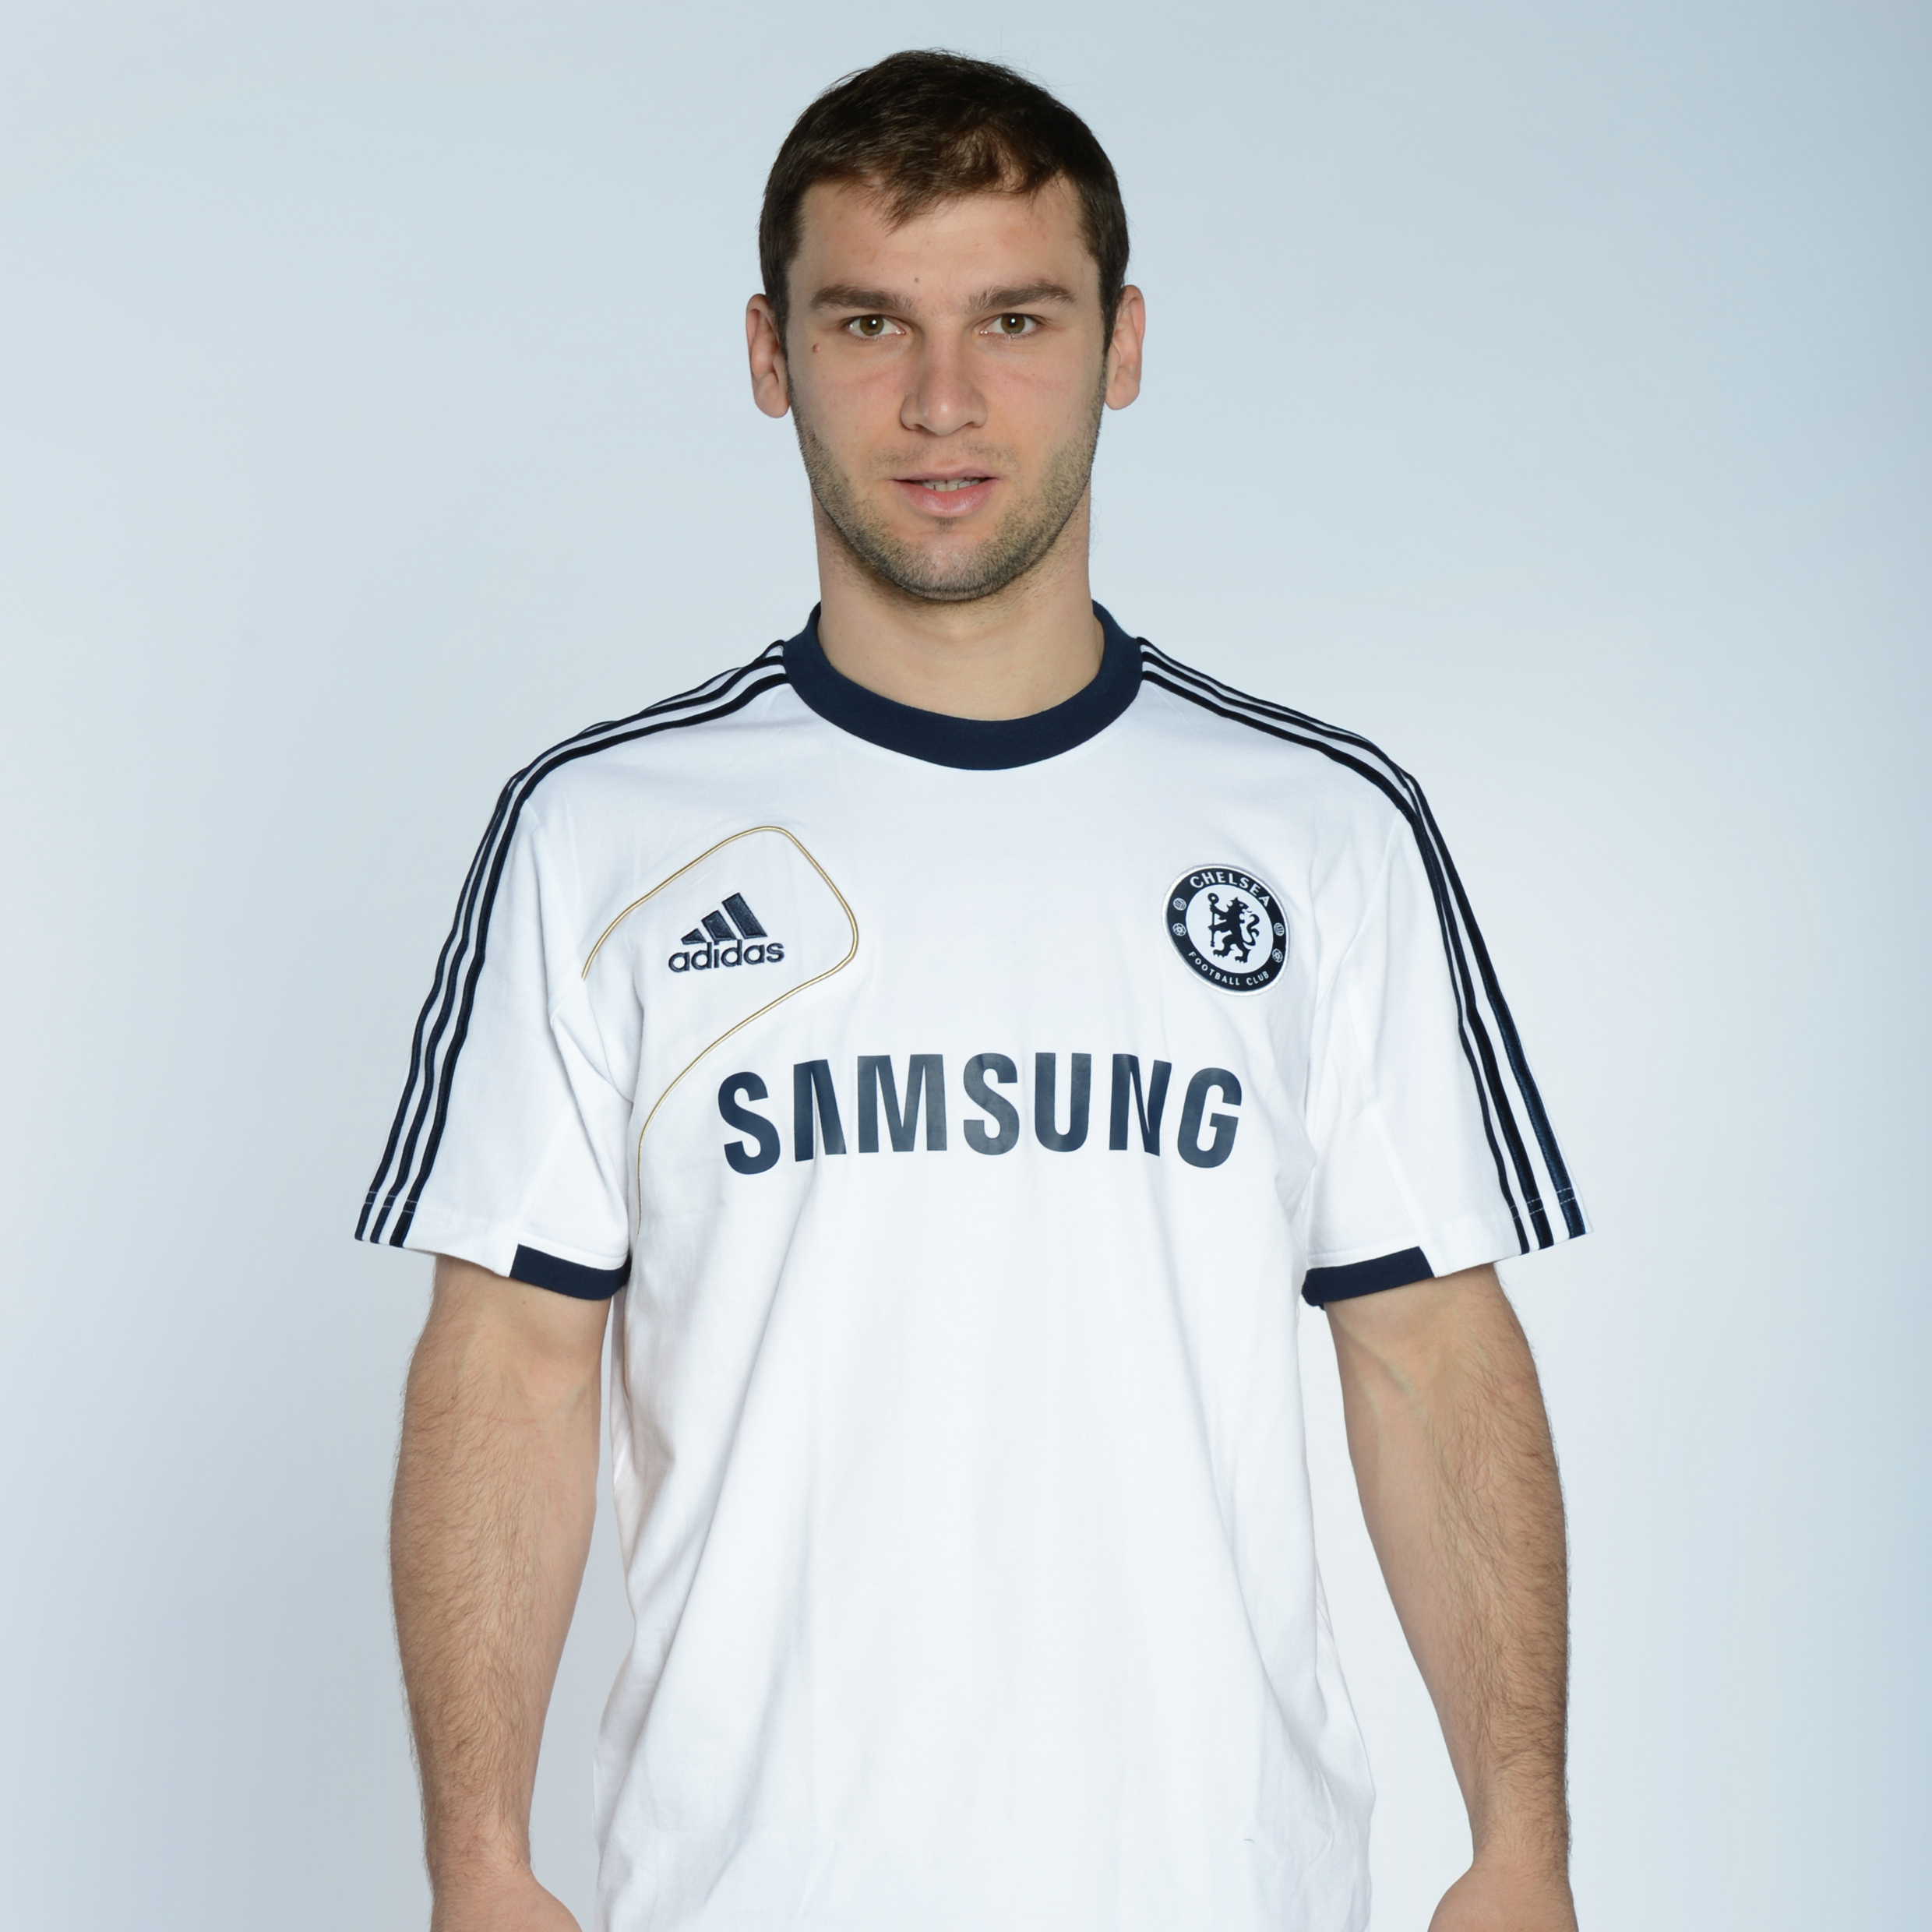 adidas Chelsea Training Jersey - White/Collegiate Navy/Light Football Gold